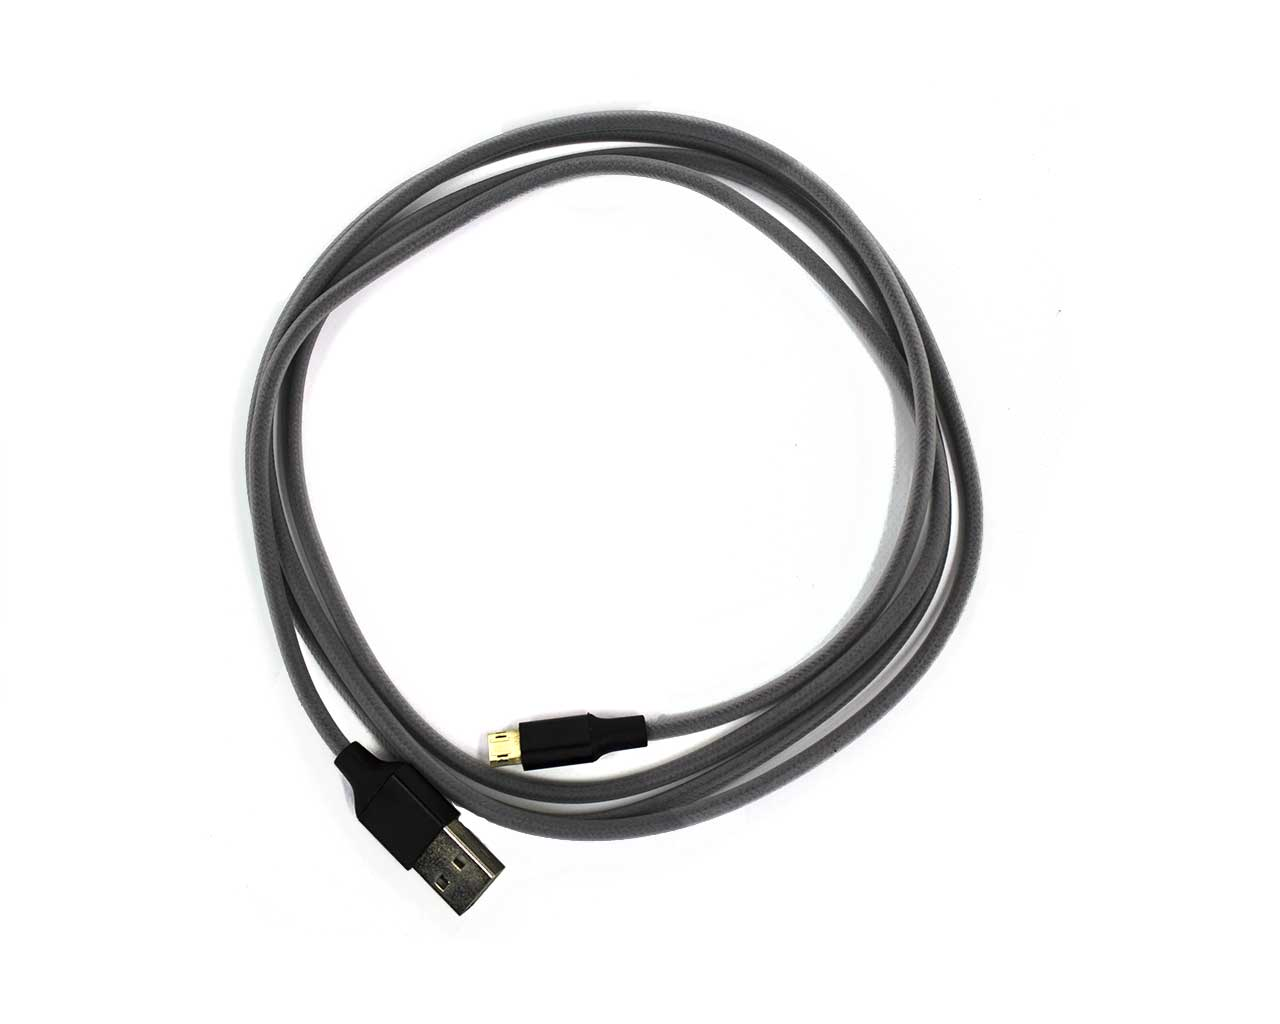 USB to MicroUSB cable